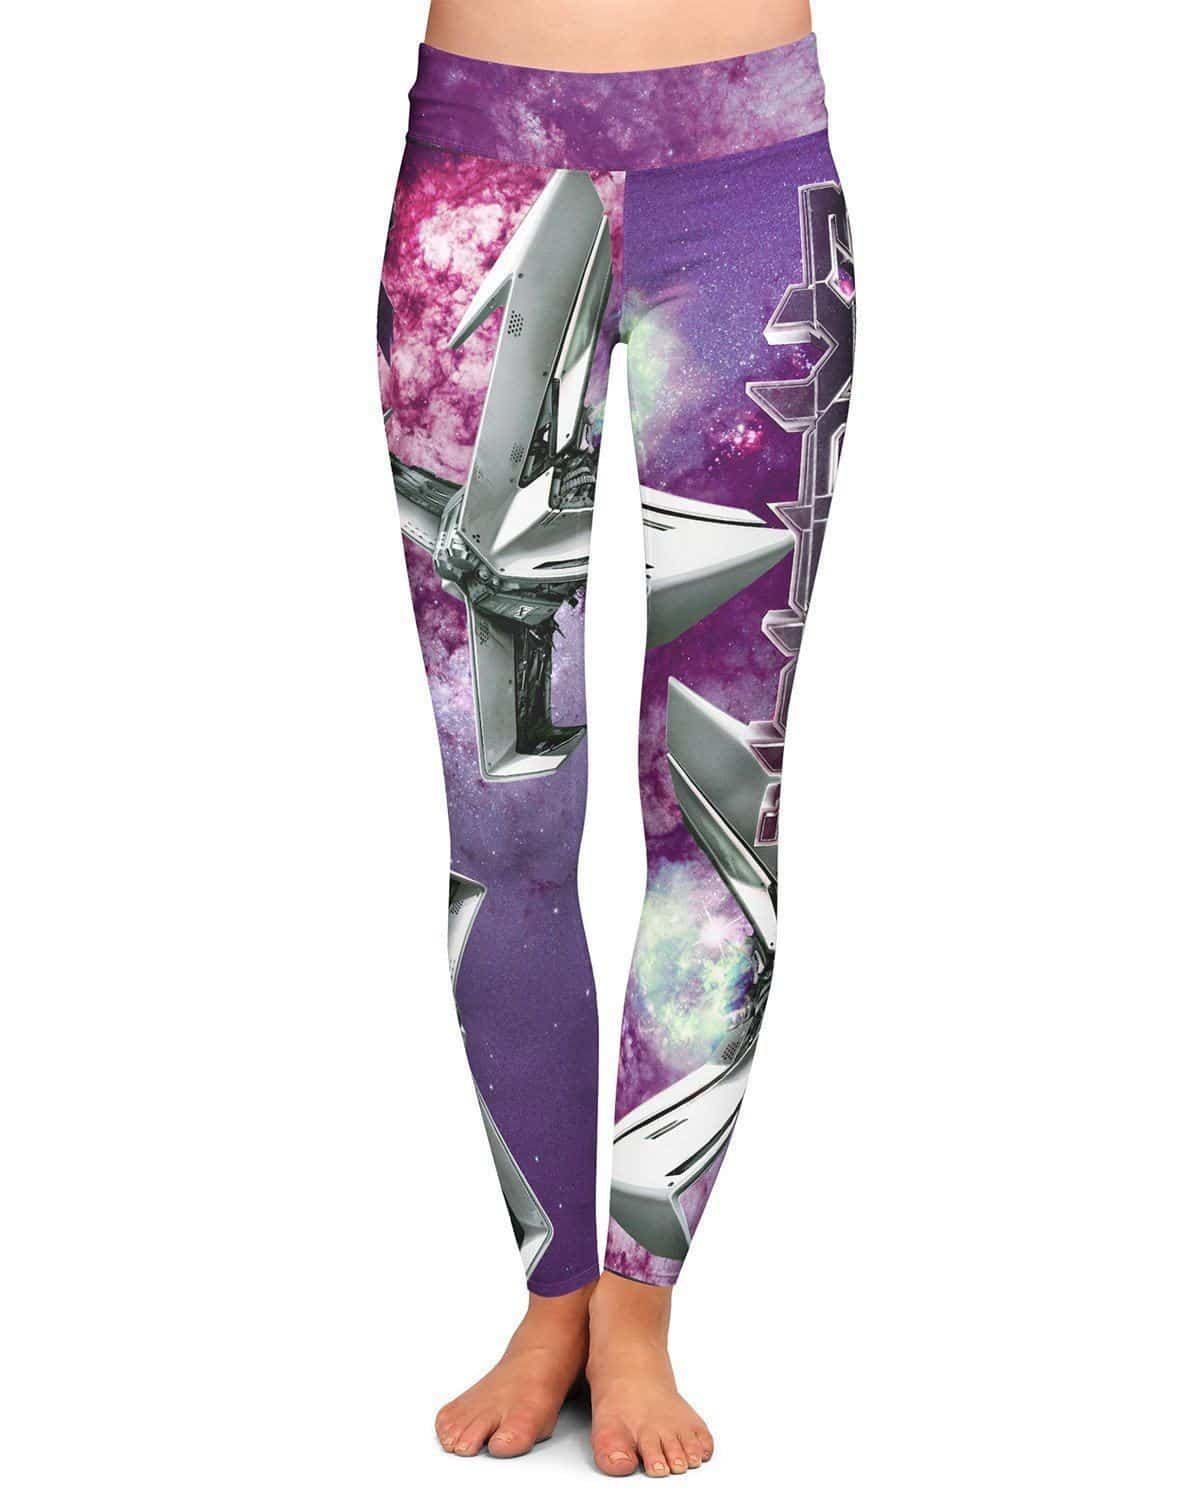 Excision Shambhala Mix 2016 Leggings - Galaxy Version